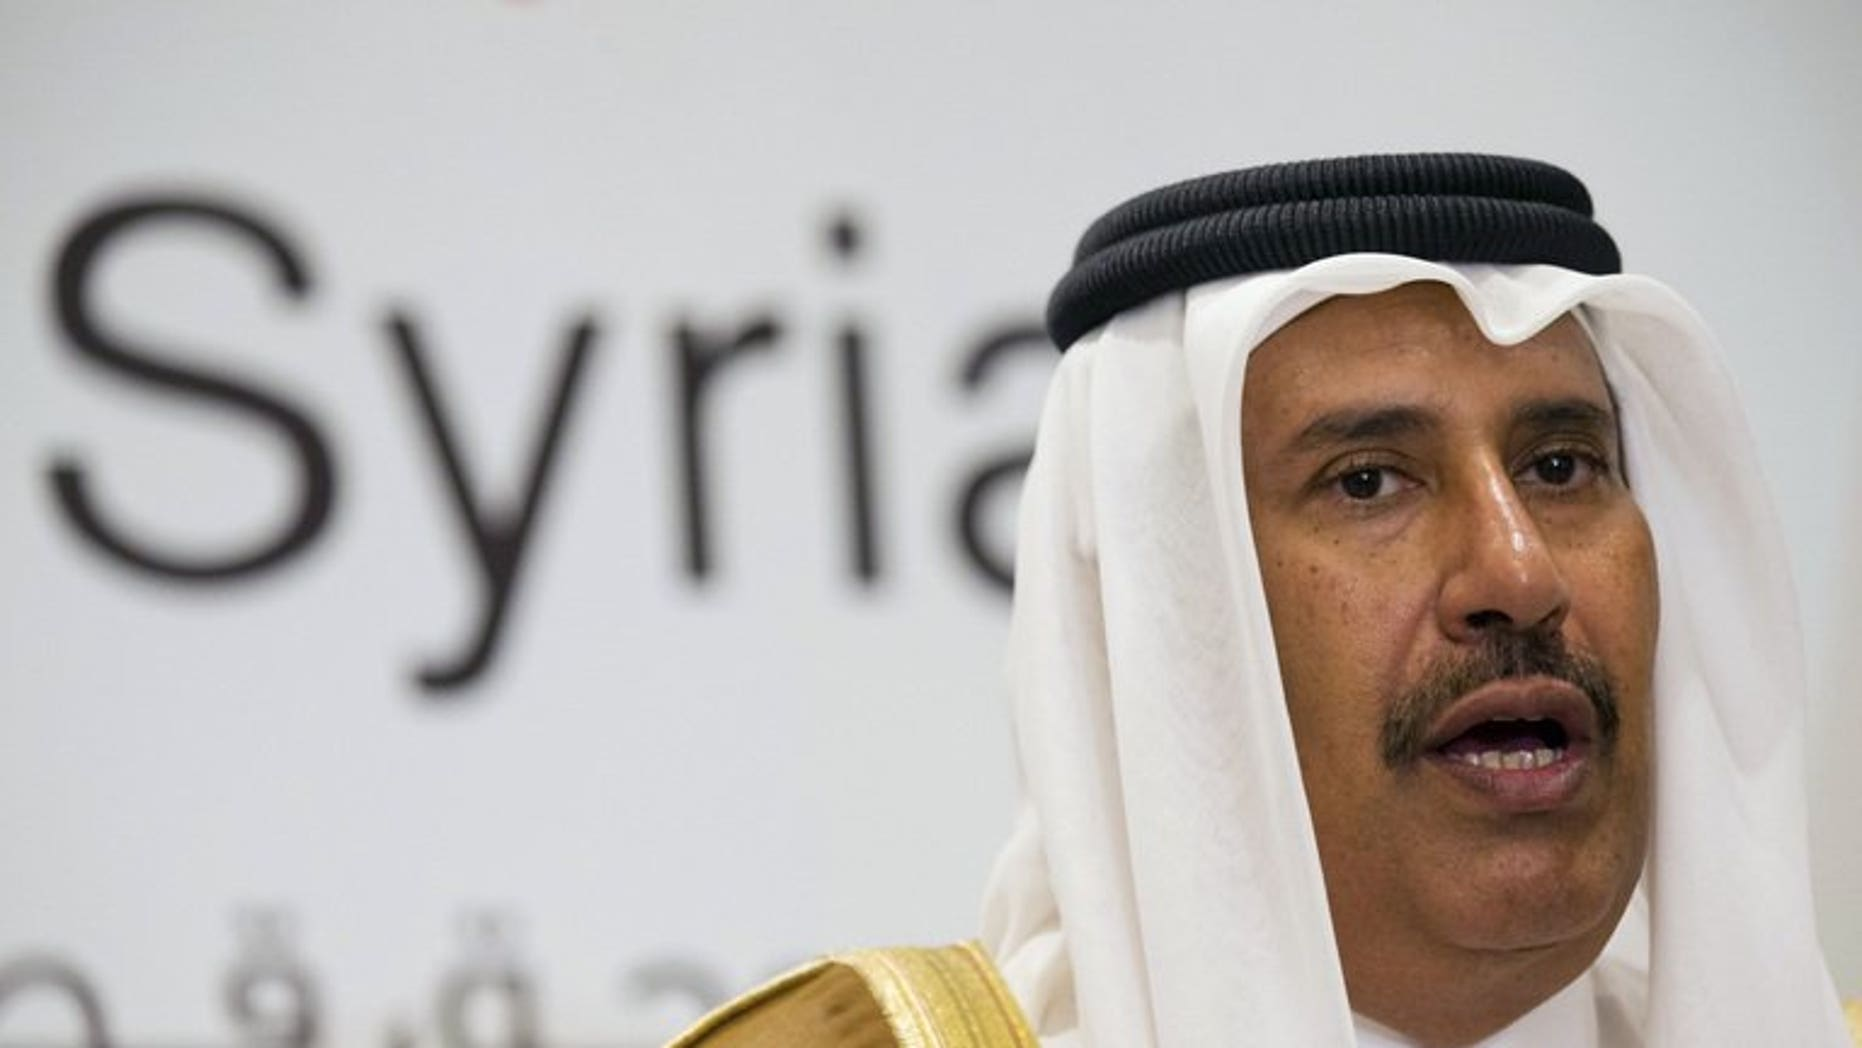 Qatari former prime minister and foreign minister Hamad bin Jassim al-Thani, speaks at a news conference on June 22, 2013. The former prime minister and strongman was Tuesday replaced as deputy head of the powerful Qatar Investment Authority in a shakeup ordered by the country's new young emir, official QNA news agency reported.